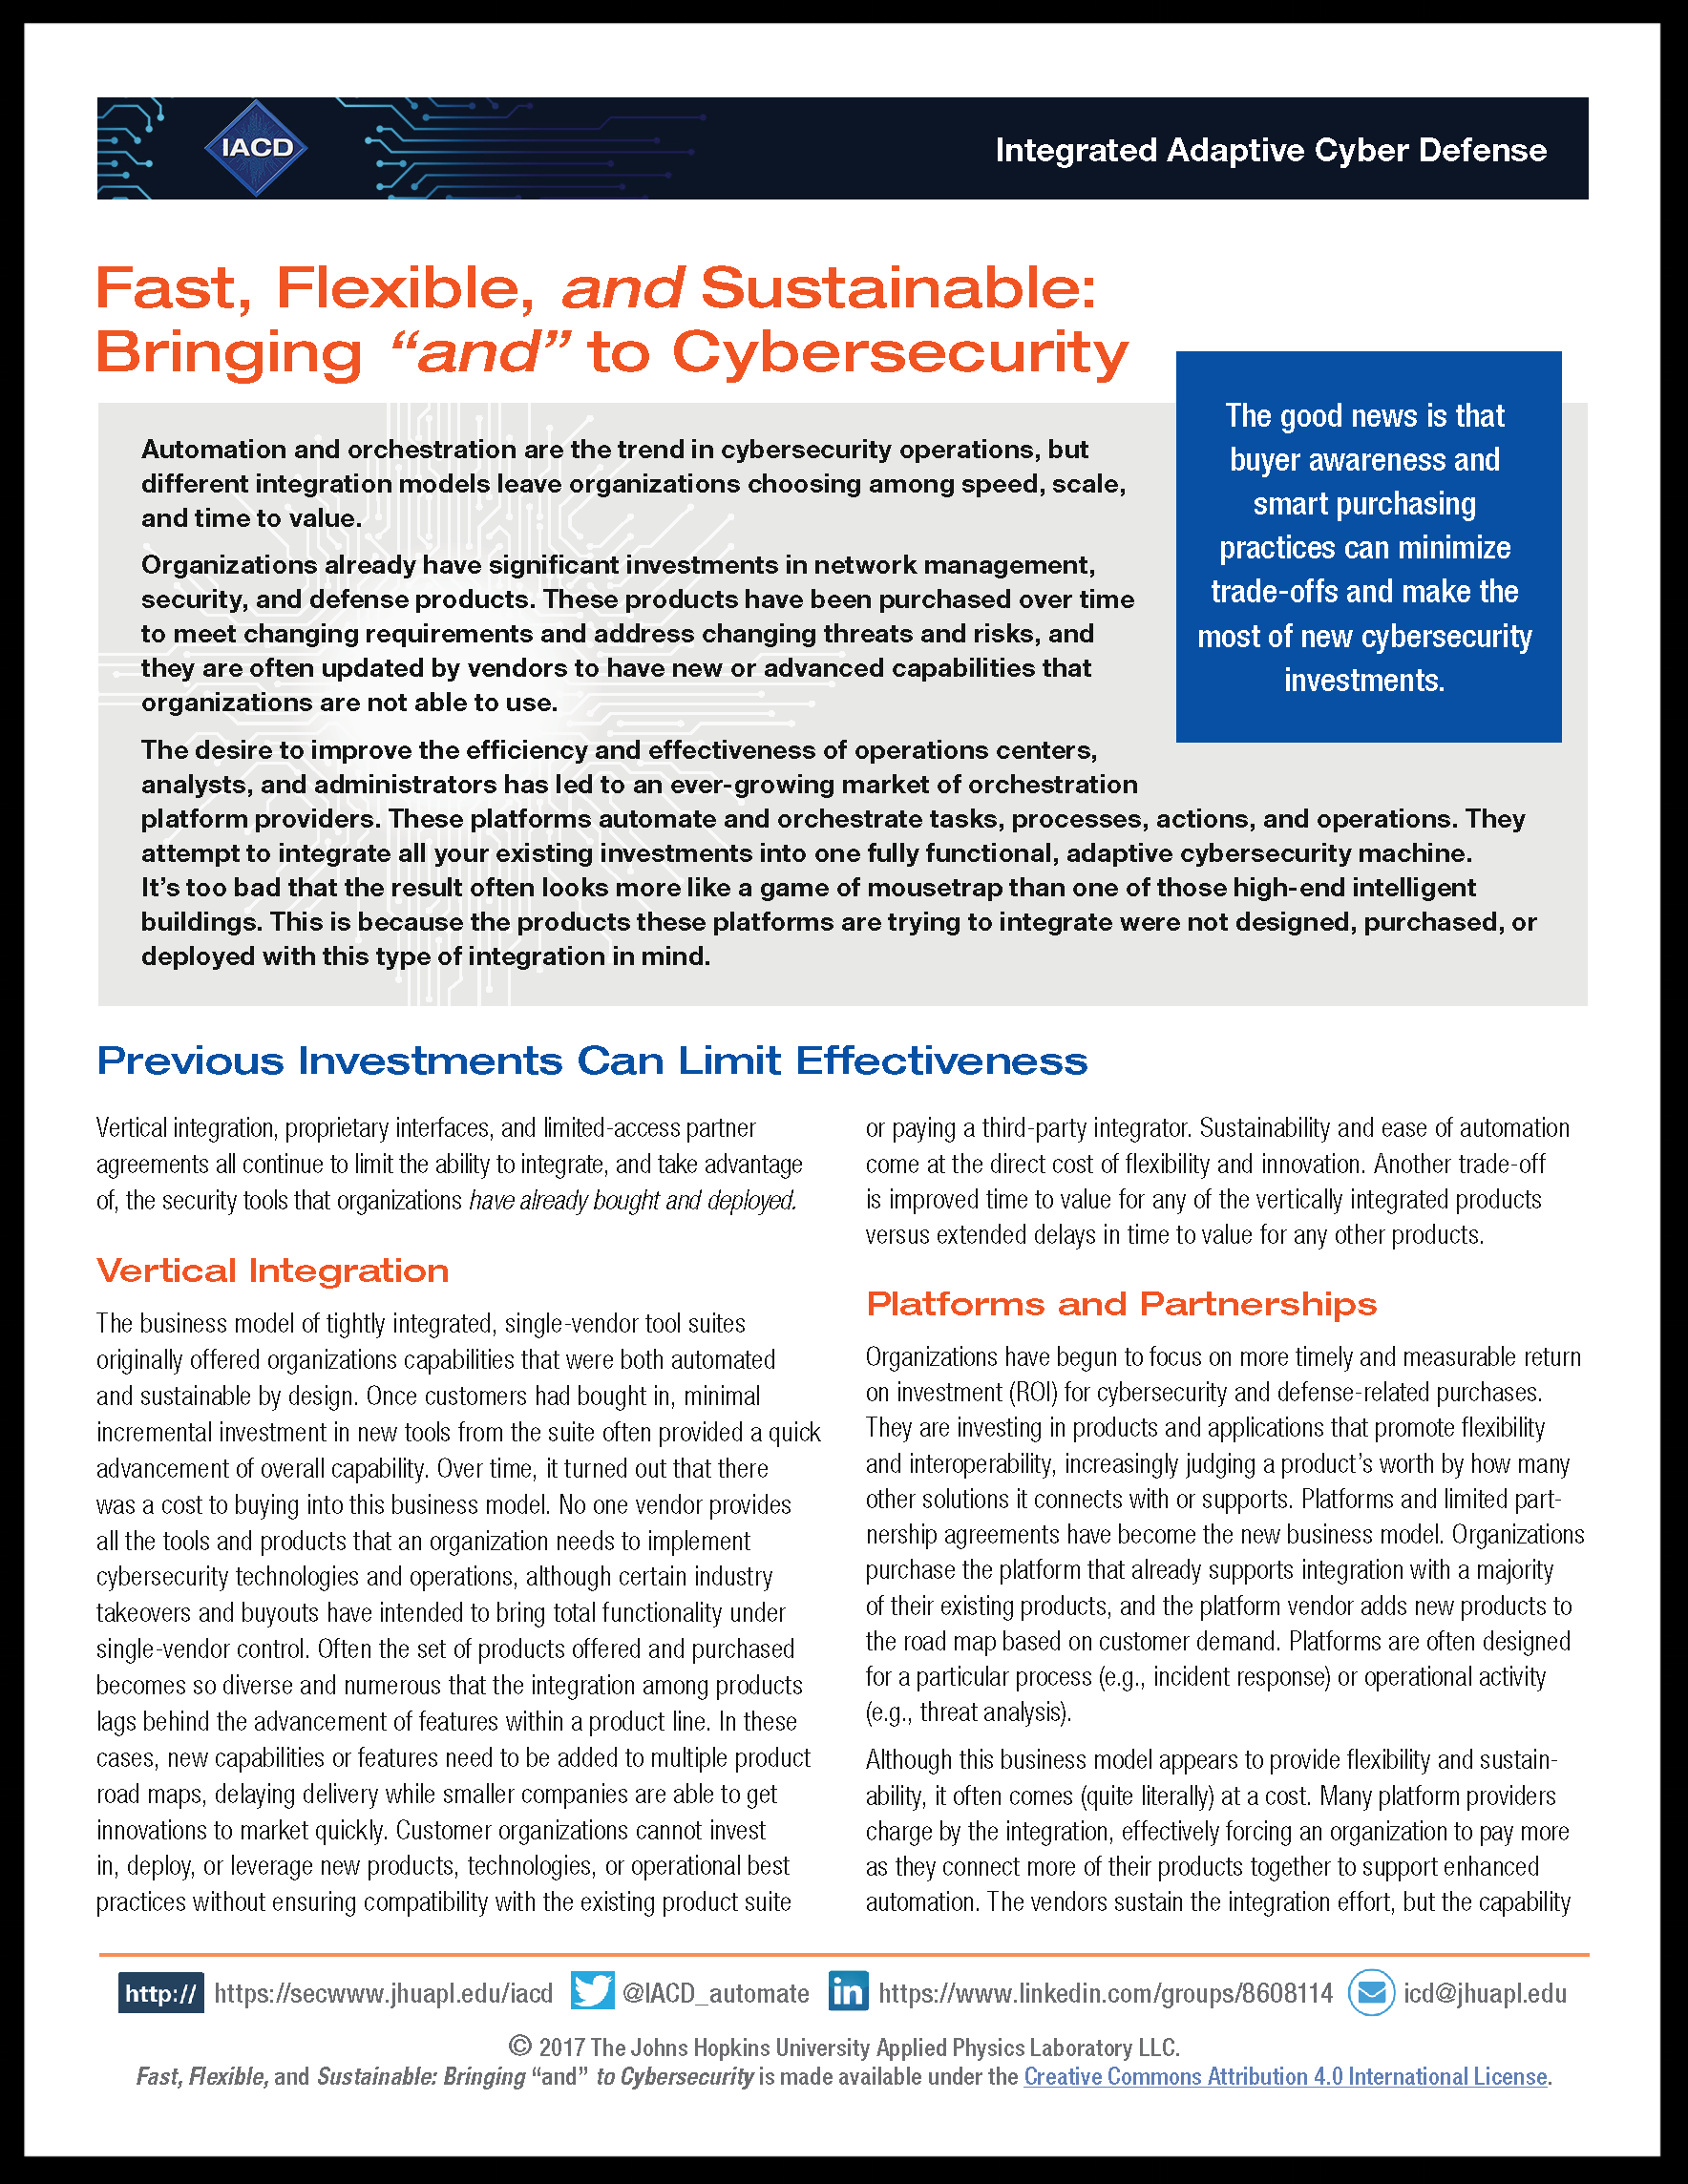 "Fast, Flexible, and Sustainable: Bringing  ""and""  to Cybersecurity"